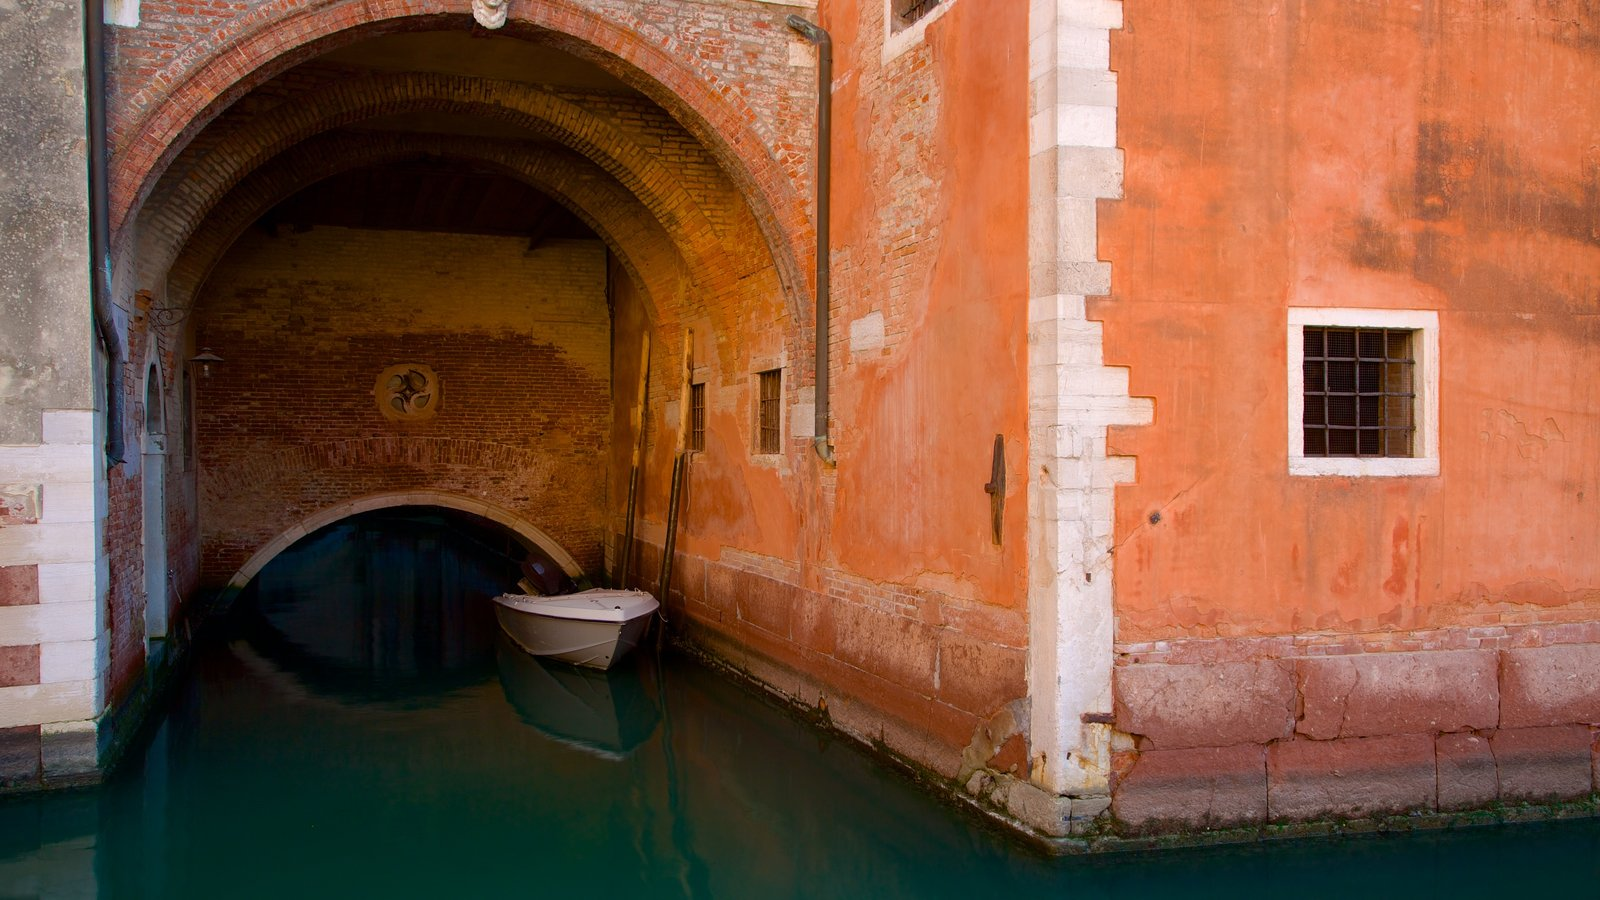 San Marco featuring a river or creek and heritage architecture